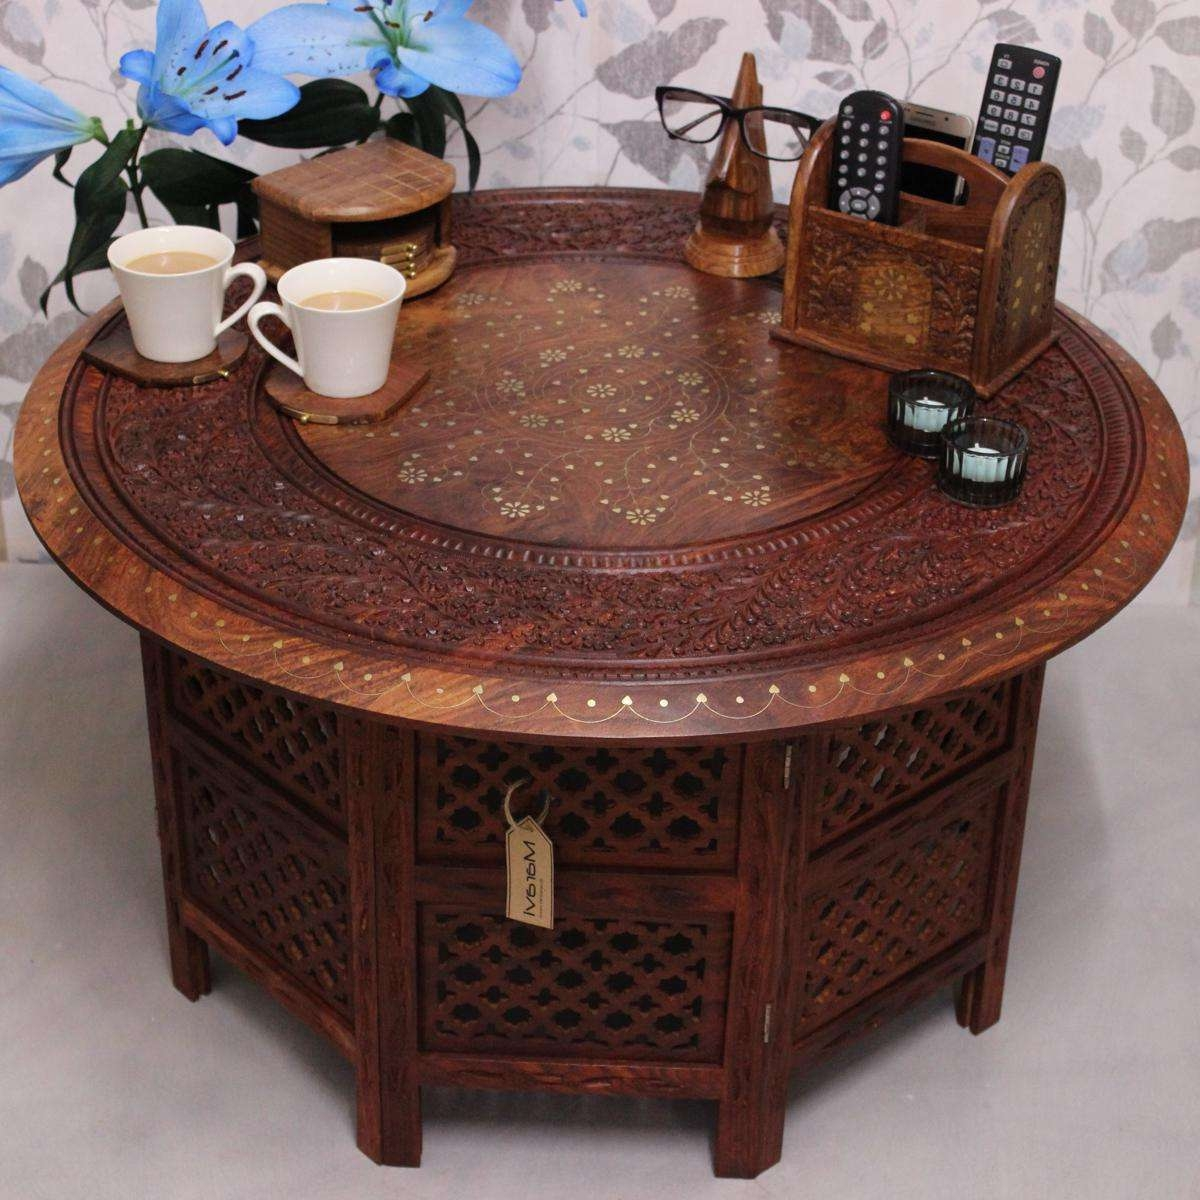 Current Indian Coffee Tables Regarding Karakoram Maravi Large Round Coffee Table Brown Solid Wooden (View 4 of 20)